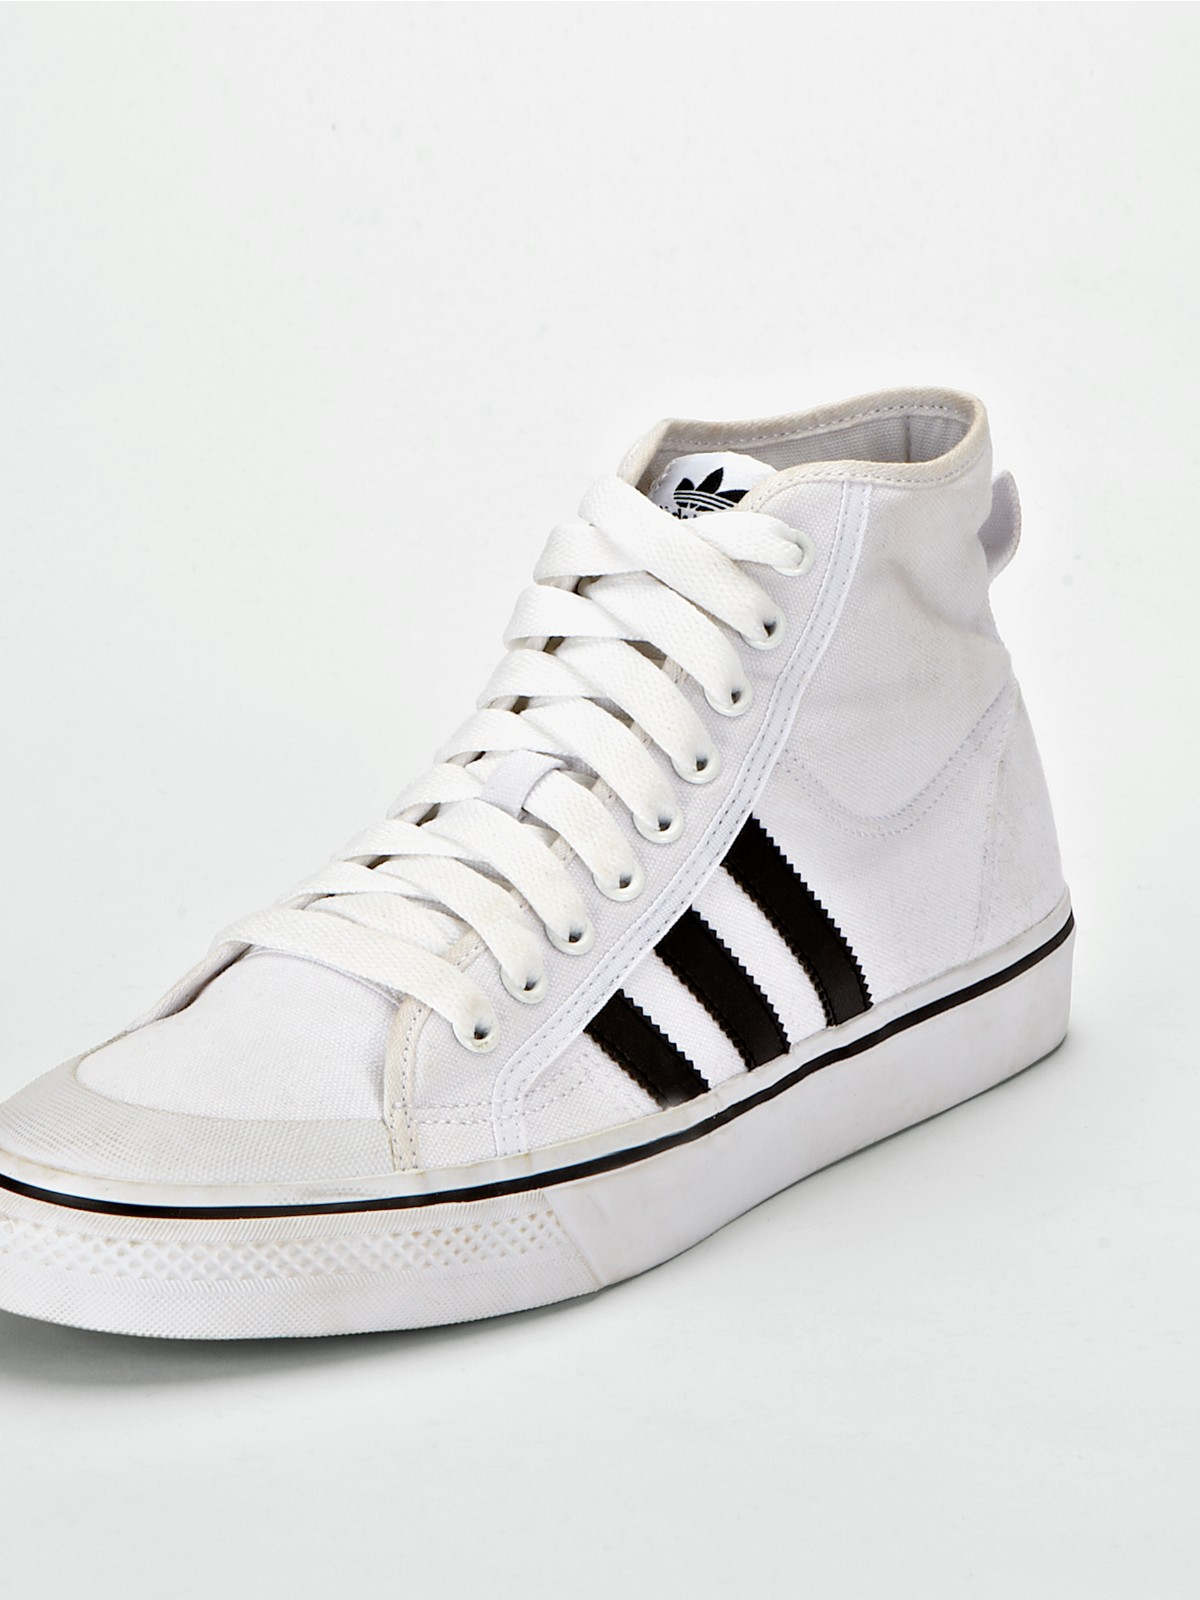 adidas adidas nizza hi basketball mens shoes in white for